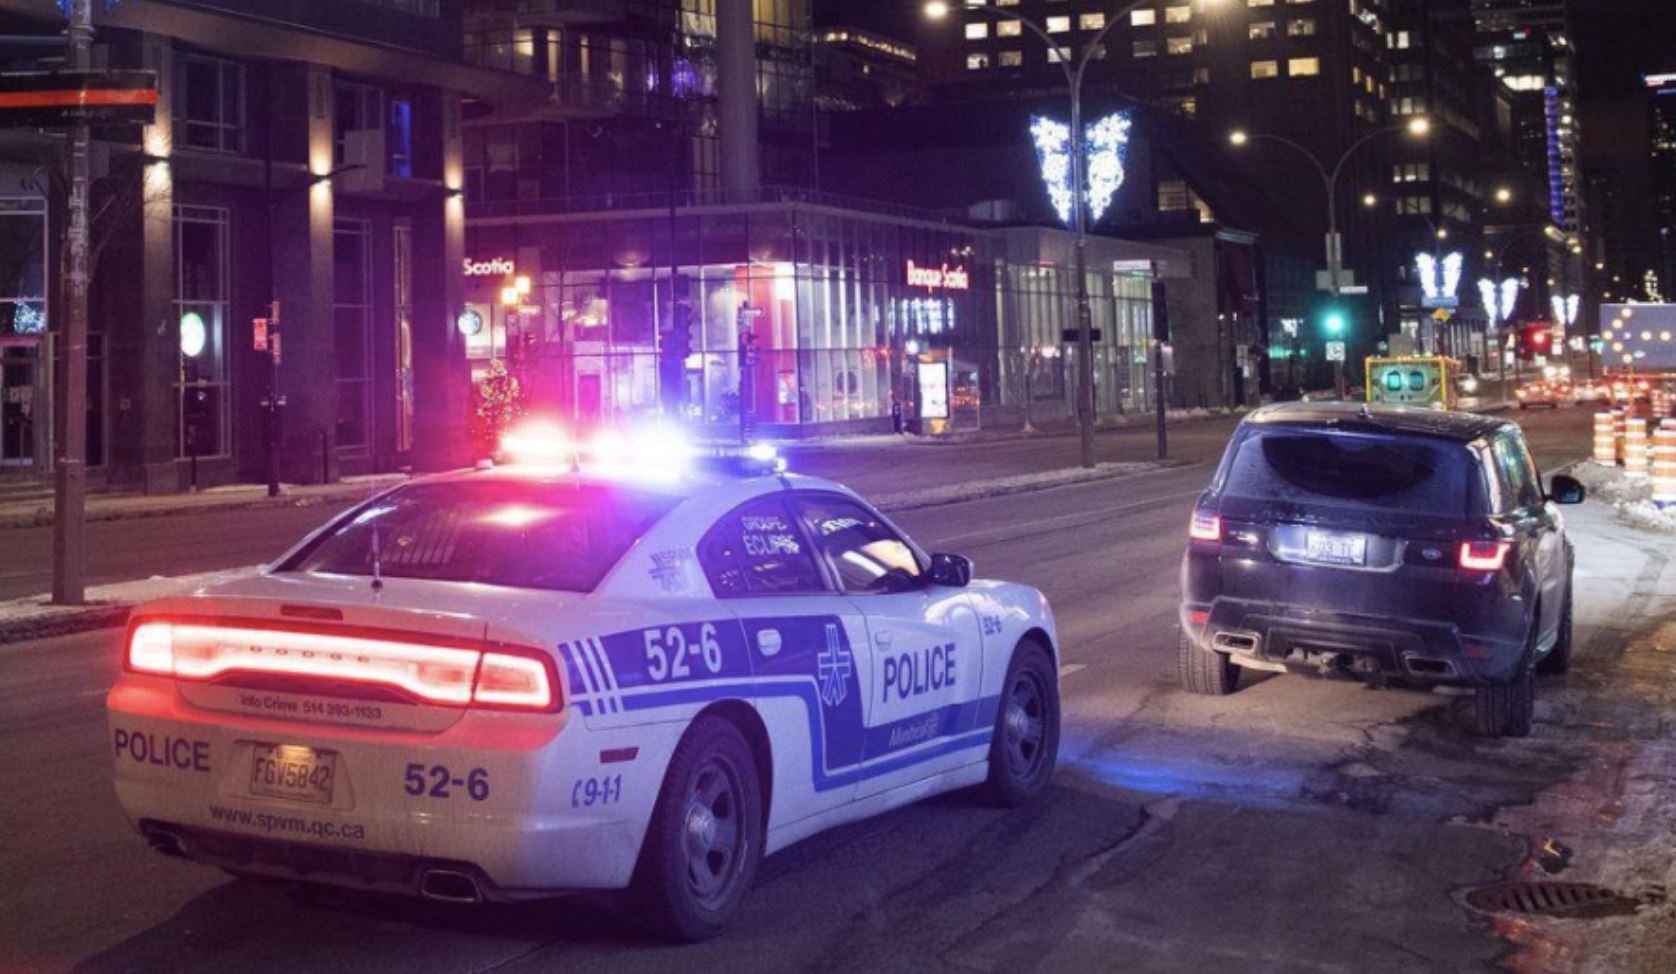 Sirens, Checkpoints, Protests: Scenes From Quebec's First Night of Curfew